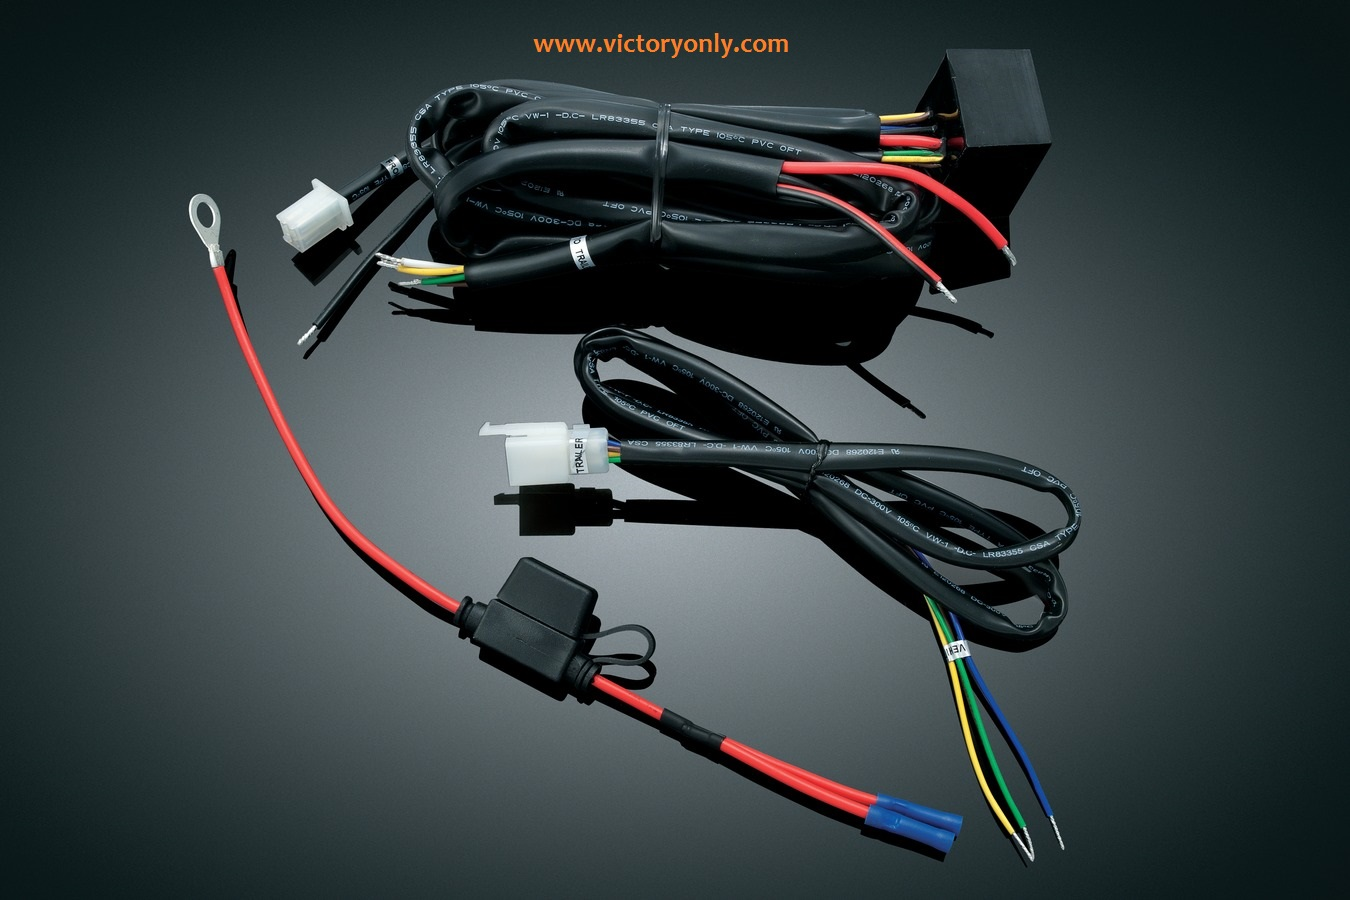 16997_kur_7671_tt_u_13_1350x900_RGB_72DPI trailer wiring harnesses for victory motorcycle Universal Wiring Harness Diagram at creativeand.co